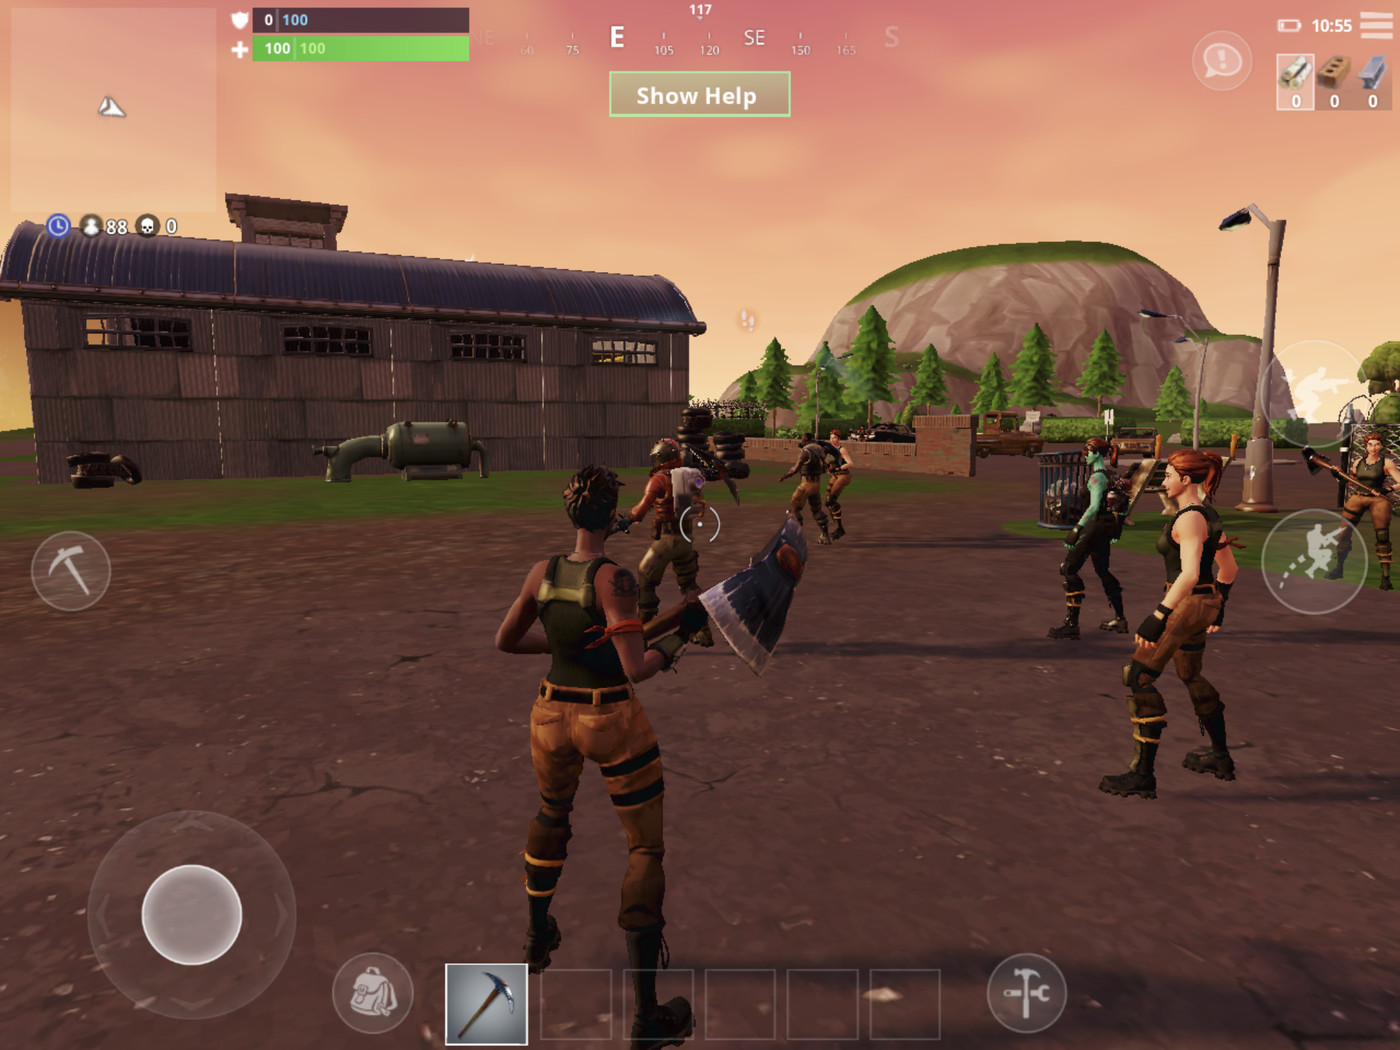 Fortnite on an iPhone X is an exciting look at the future of